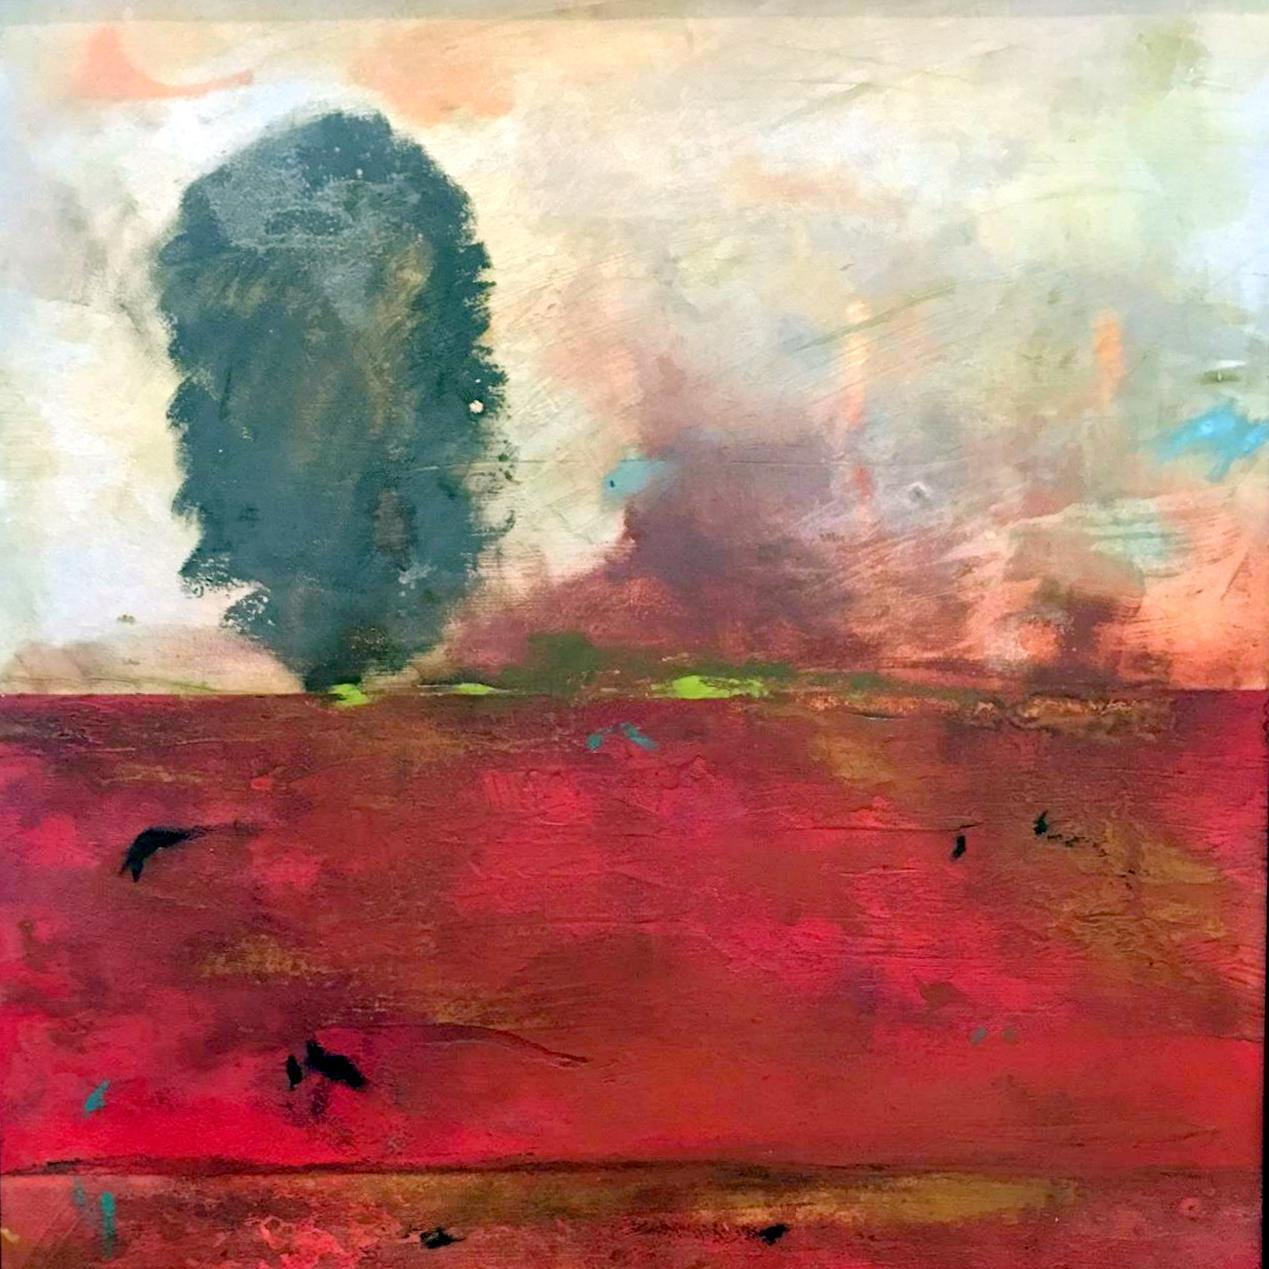 fine art painting, abstract landscape, oil painting, encaustic painting, Beyond the tree Everything, John Baughman, landscape